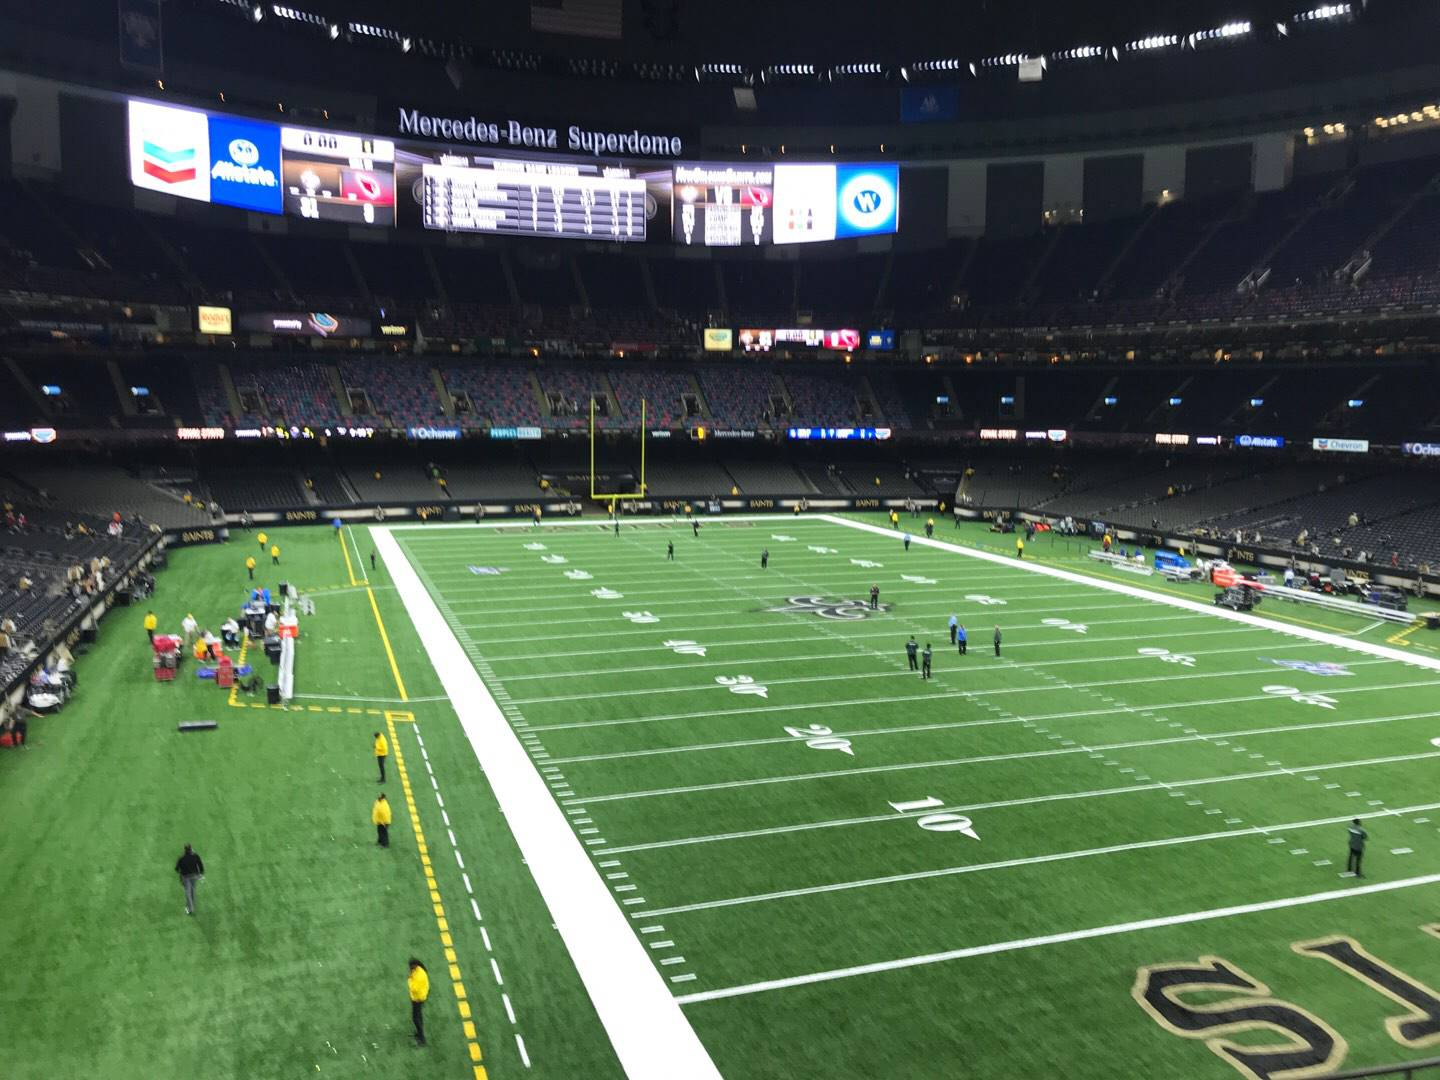 Mercedes-Benz Superdome Section 302 Row 7 Seat 8